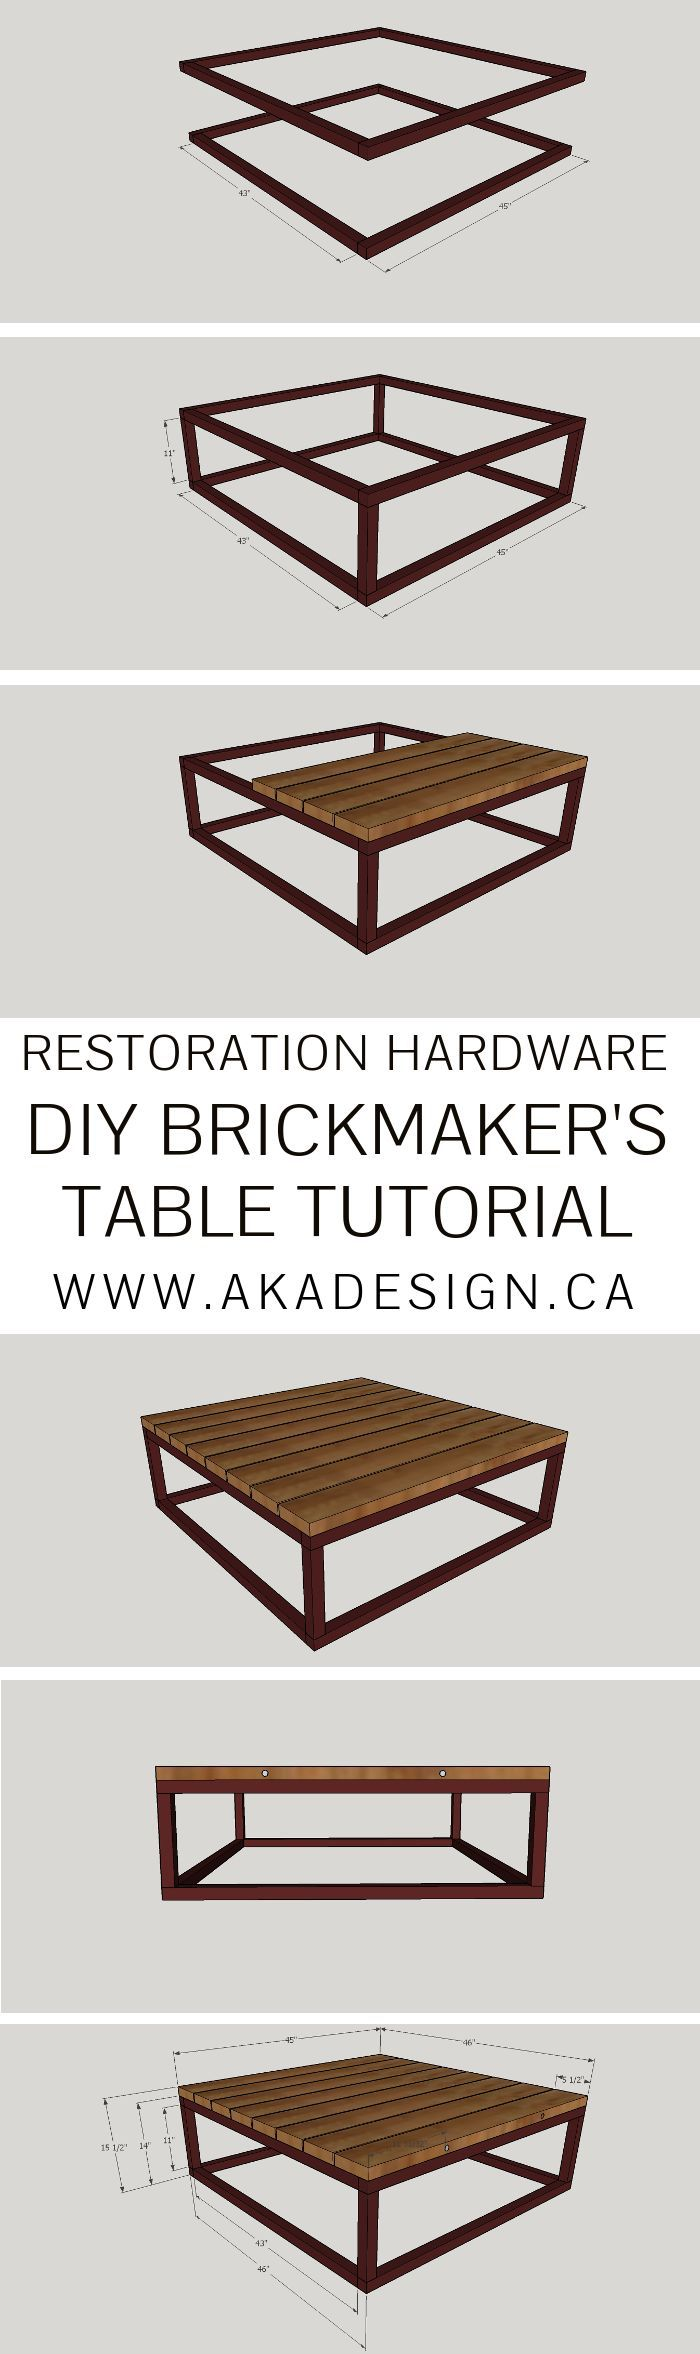 Diy Brickmaker 39 S Coffee Table Woodworking Plans Furniture And Wicker Furniture